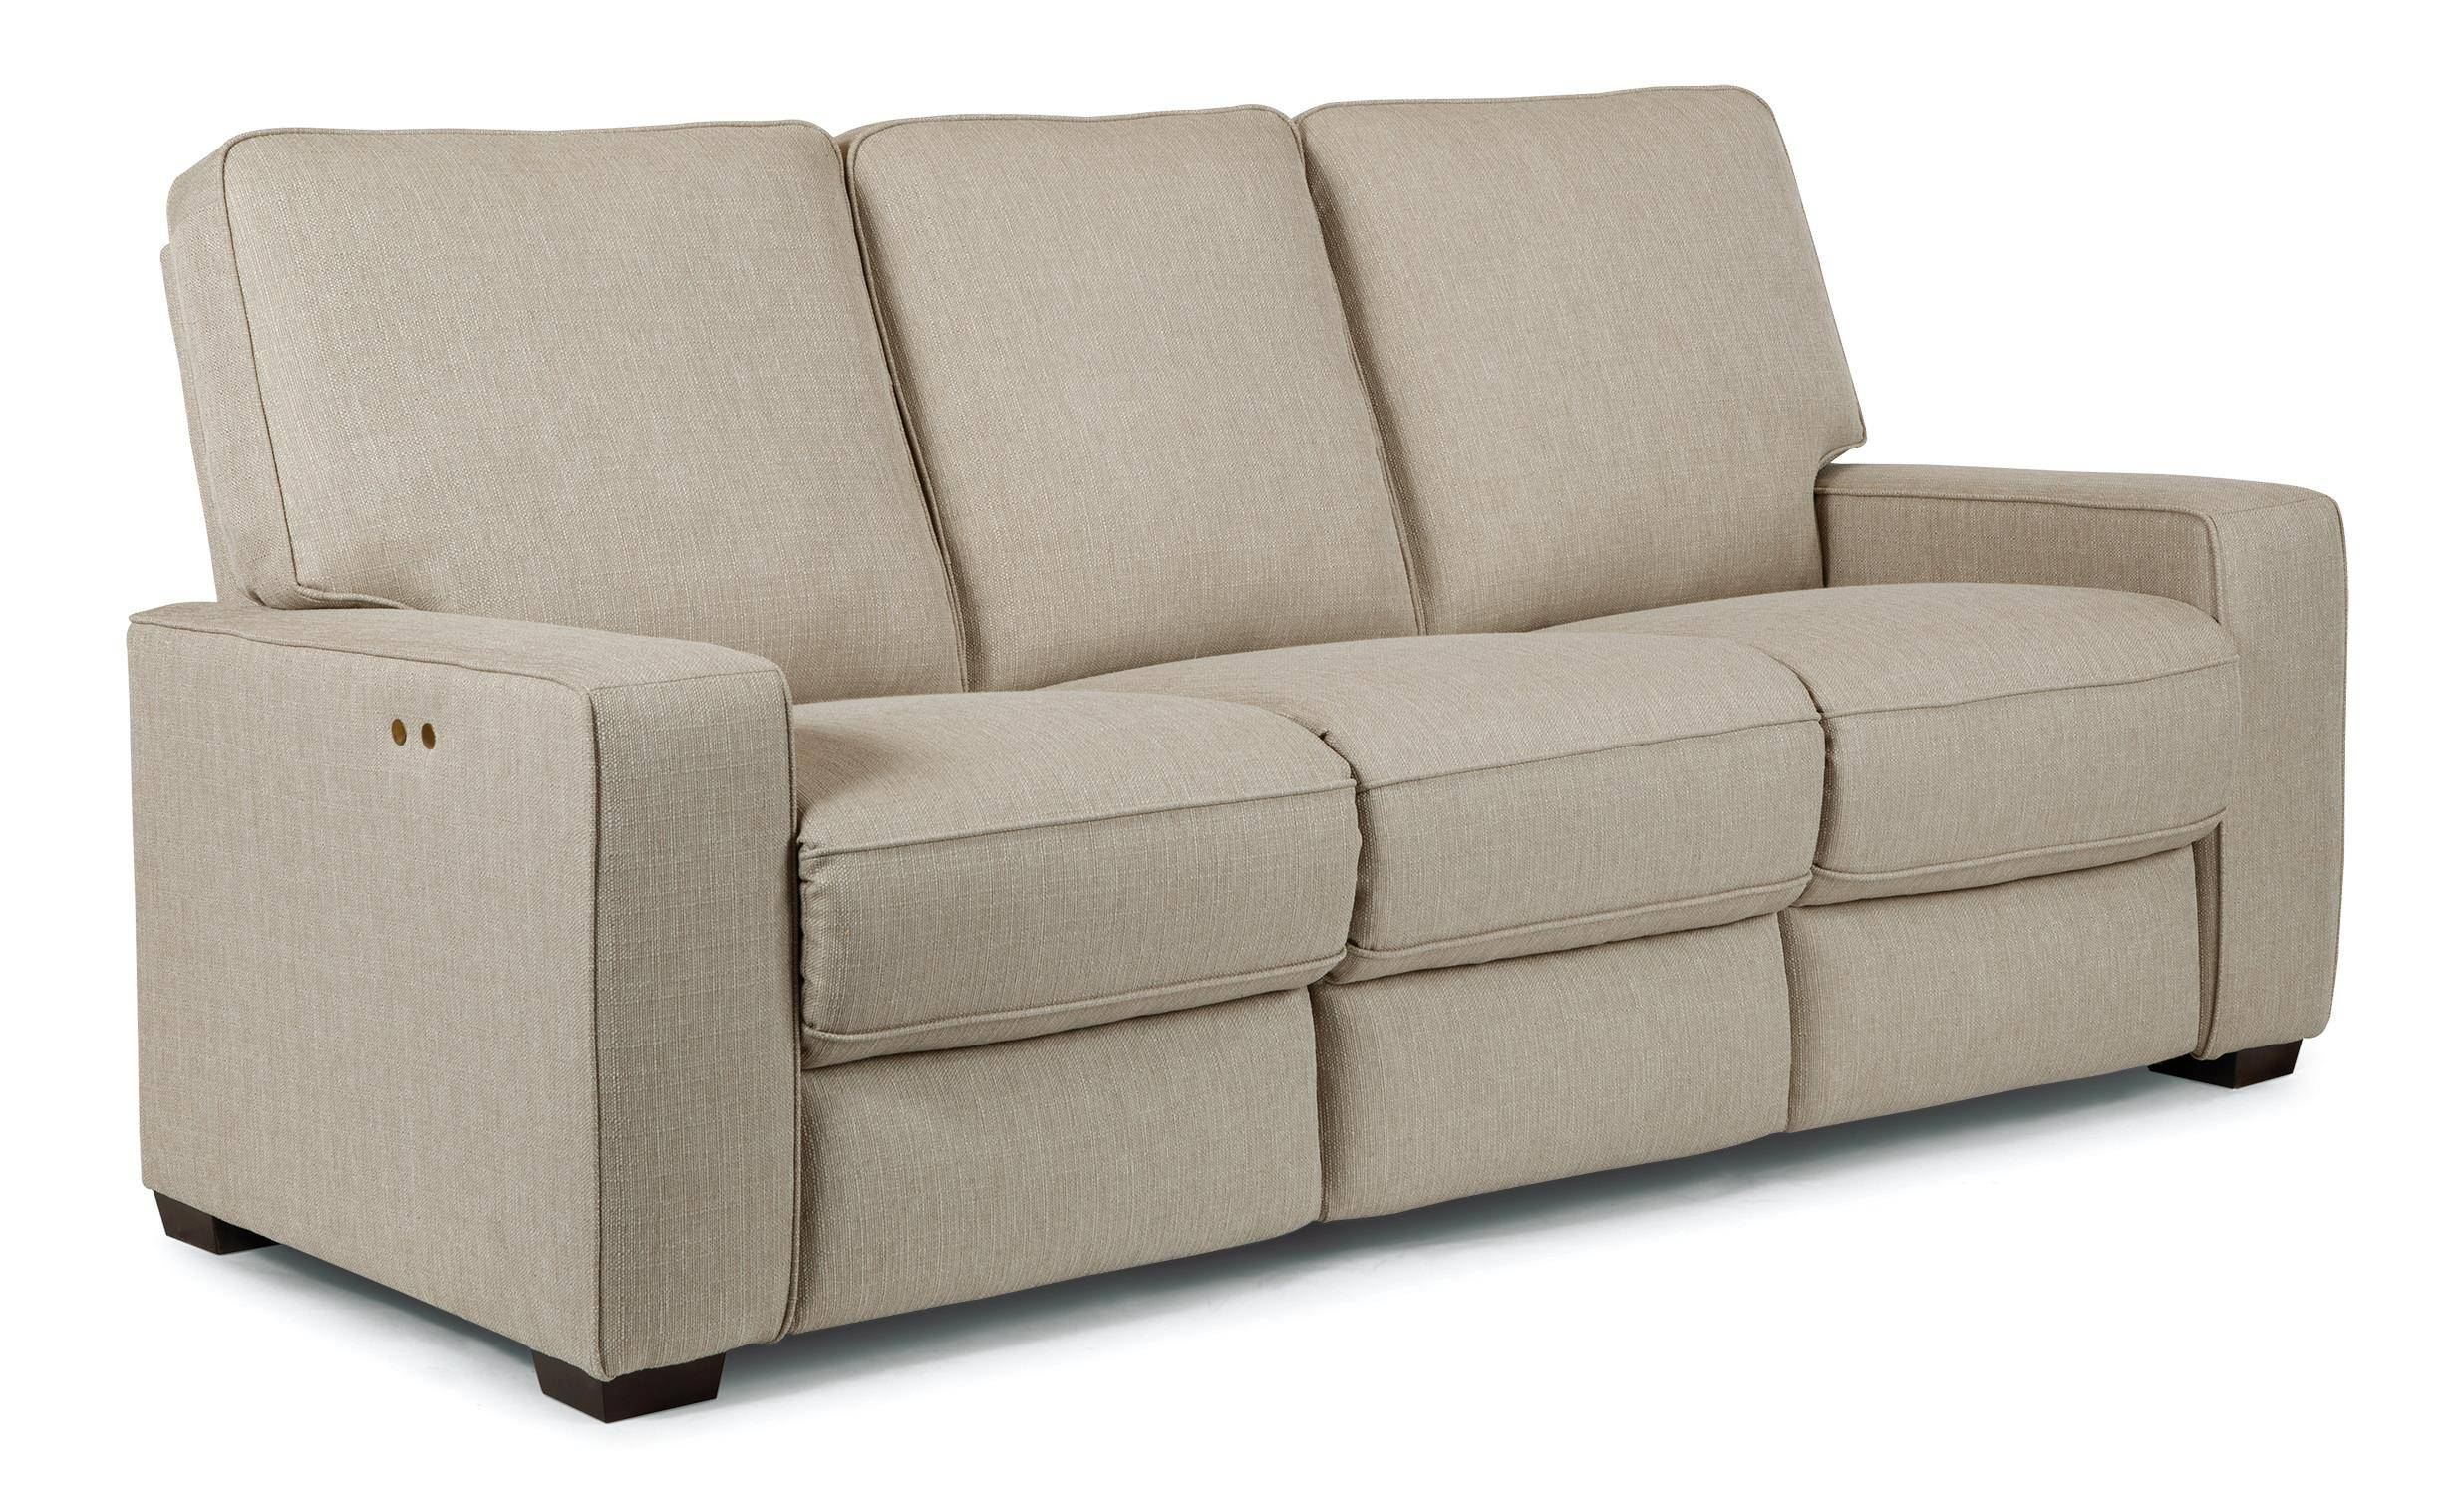 Best Home Furnishings Celena Contemporary Power Reclining Sofa inside Recliner Sofa Chairs (Image 5 of 30)